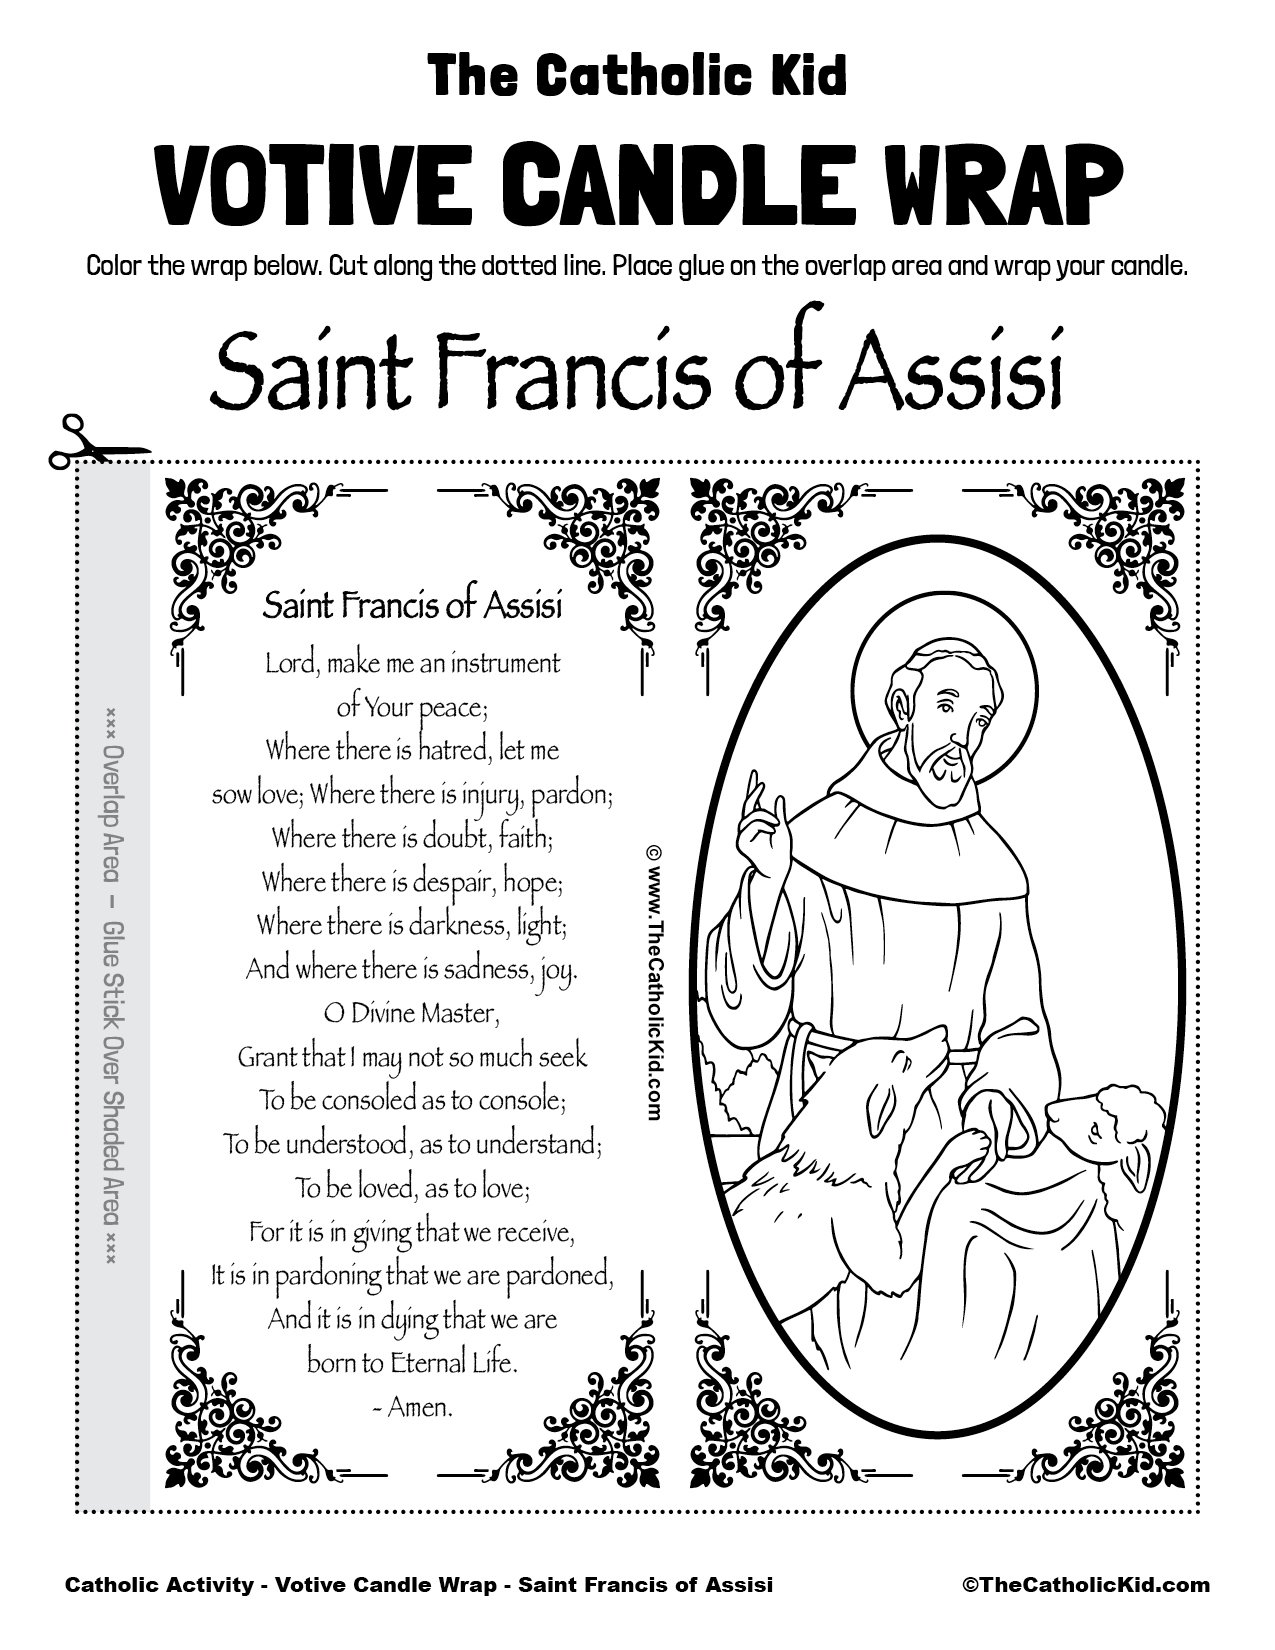 Free Printable Catholic Votive Candle Wrap Coloring Page Saint Francis of Assisi